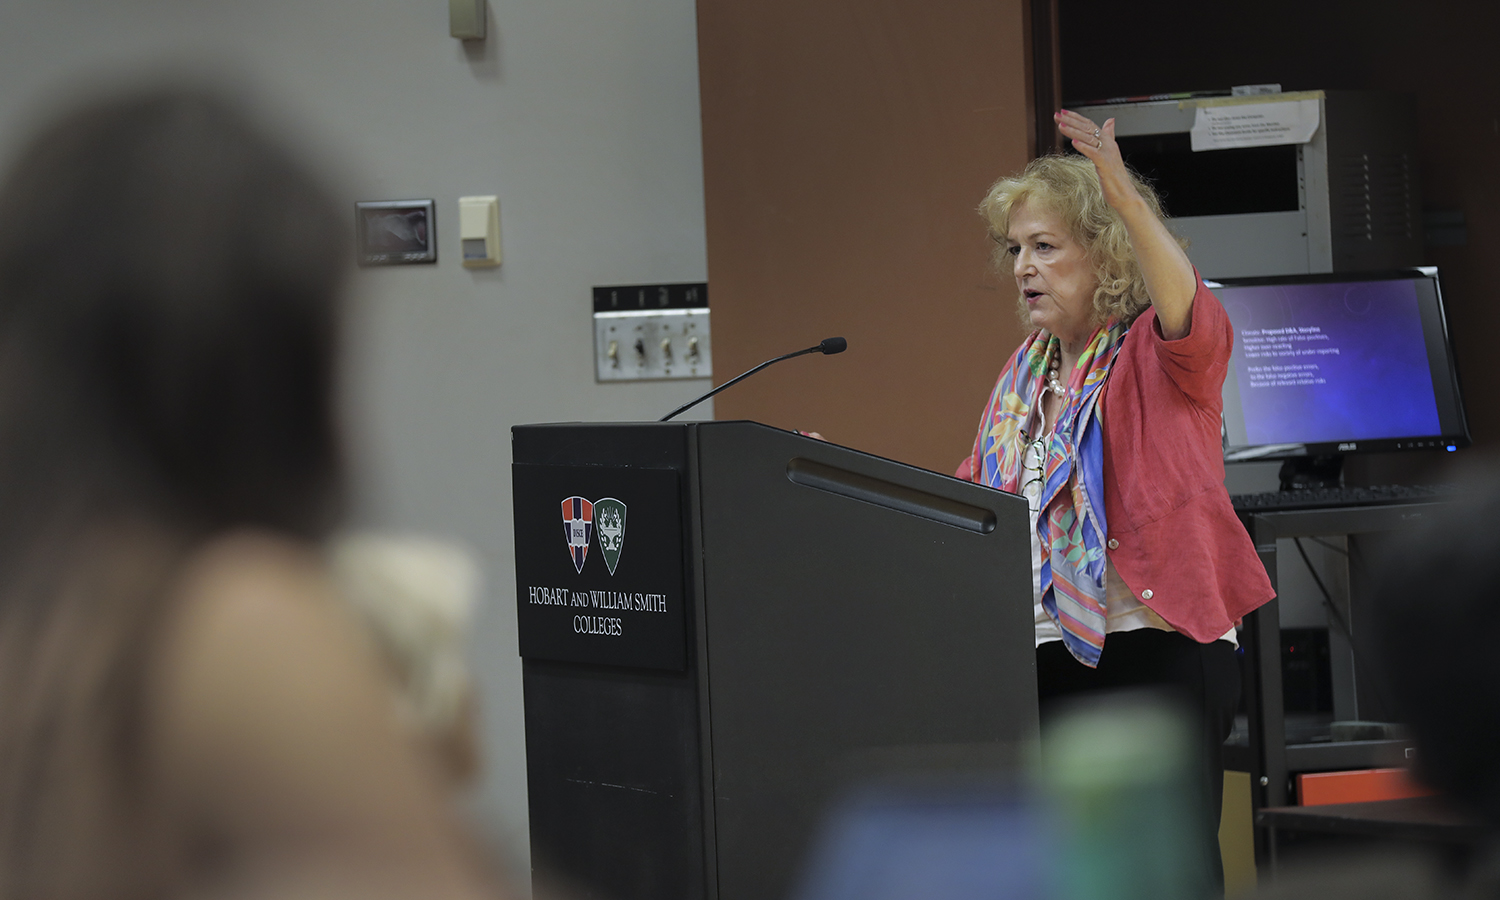 Elisabeth Lloyd, the Arnold and Maxine Tanis Chair of History and Philosophy of Science at Indiana University discusses new methods of attributing cliamte change during the The Climate Change and Philosophy Colloquium on Thursday.